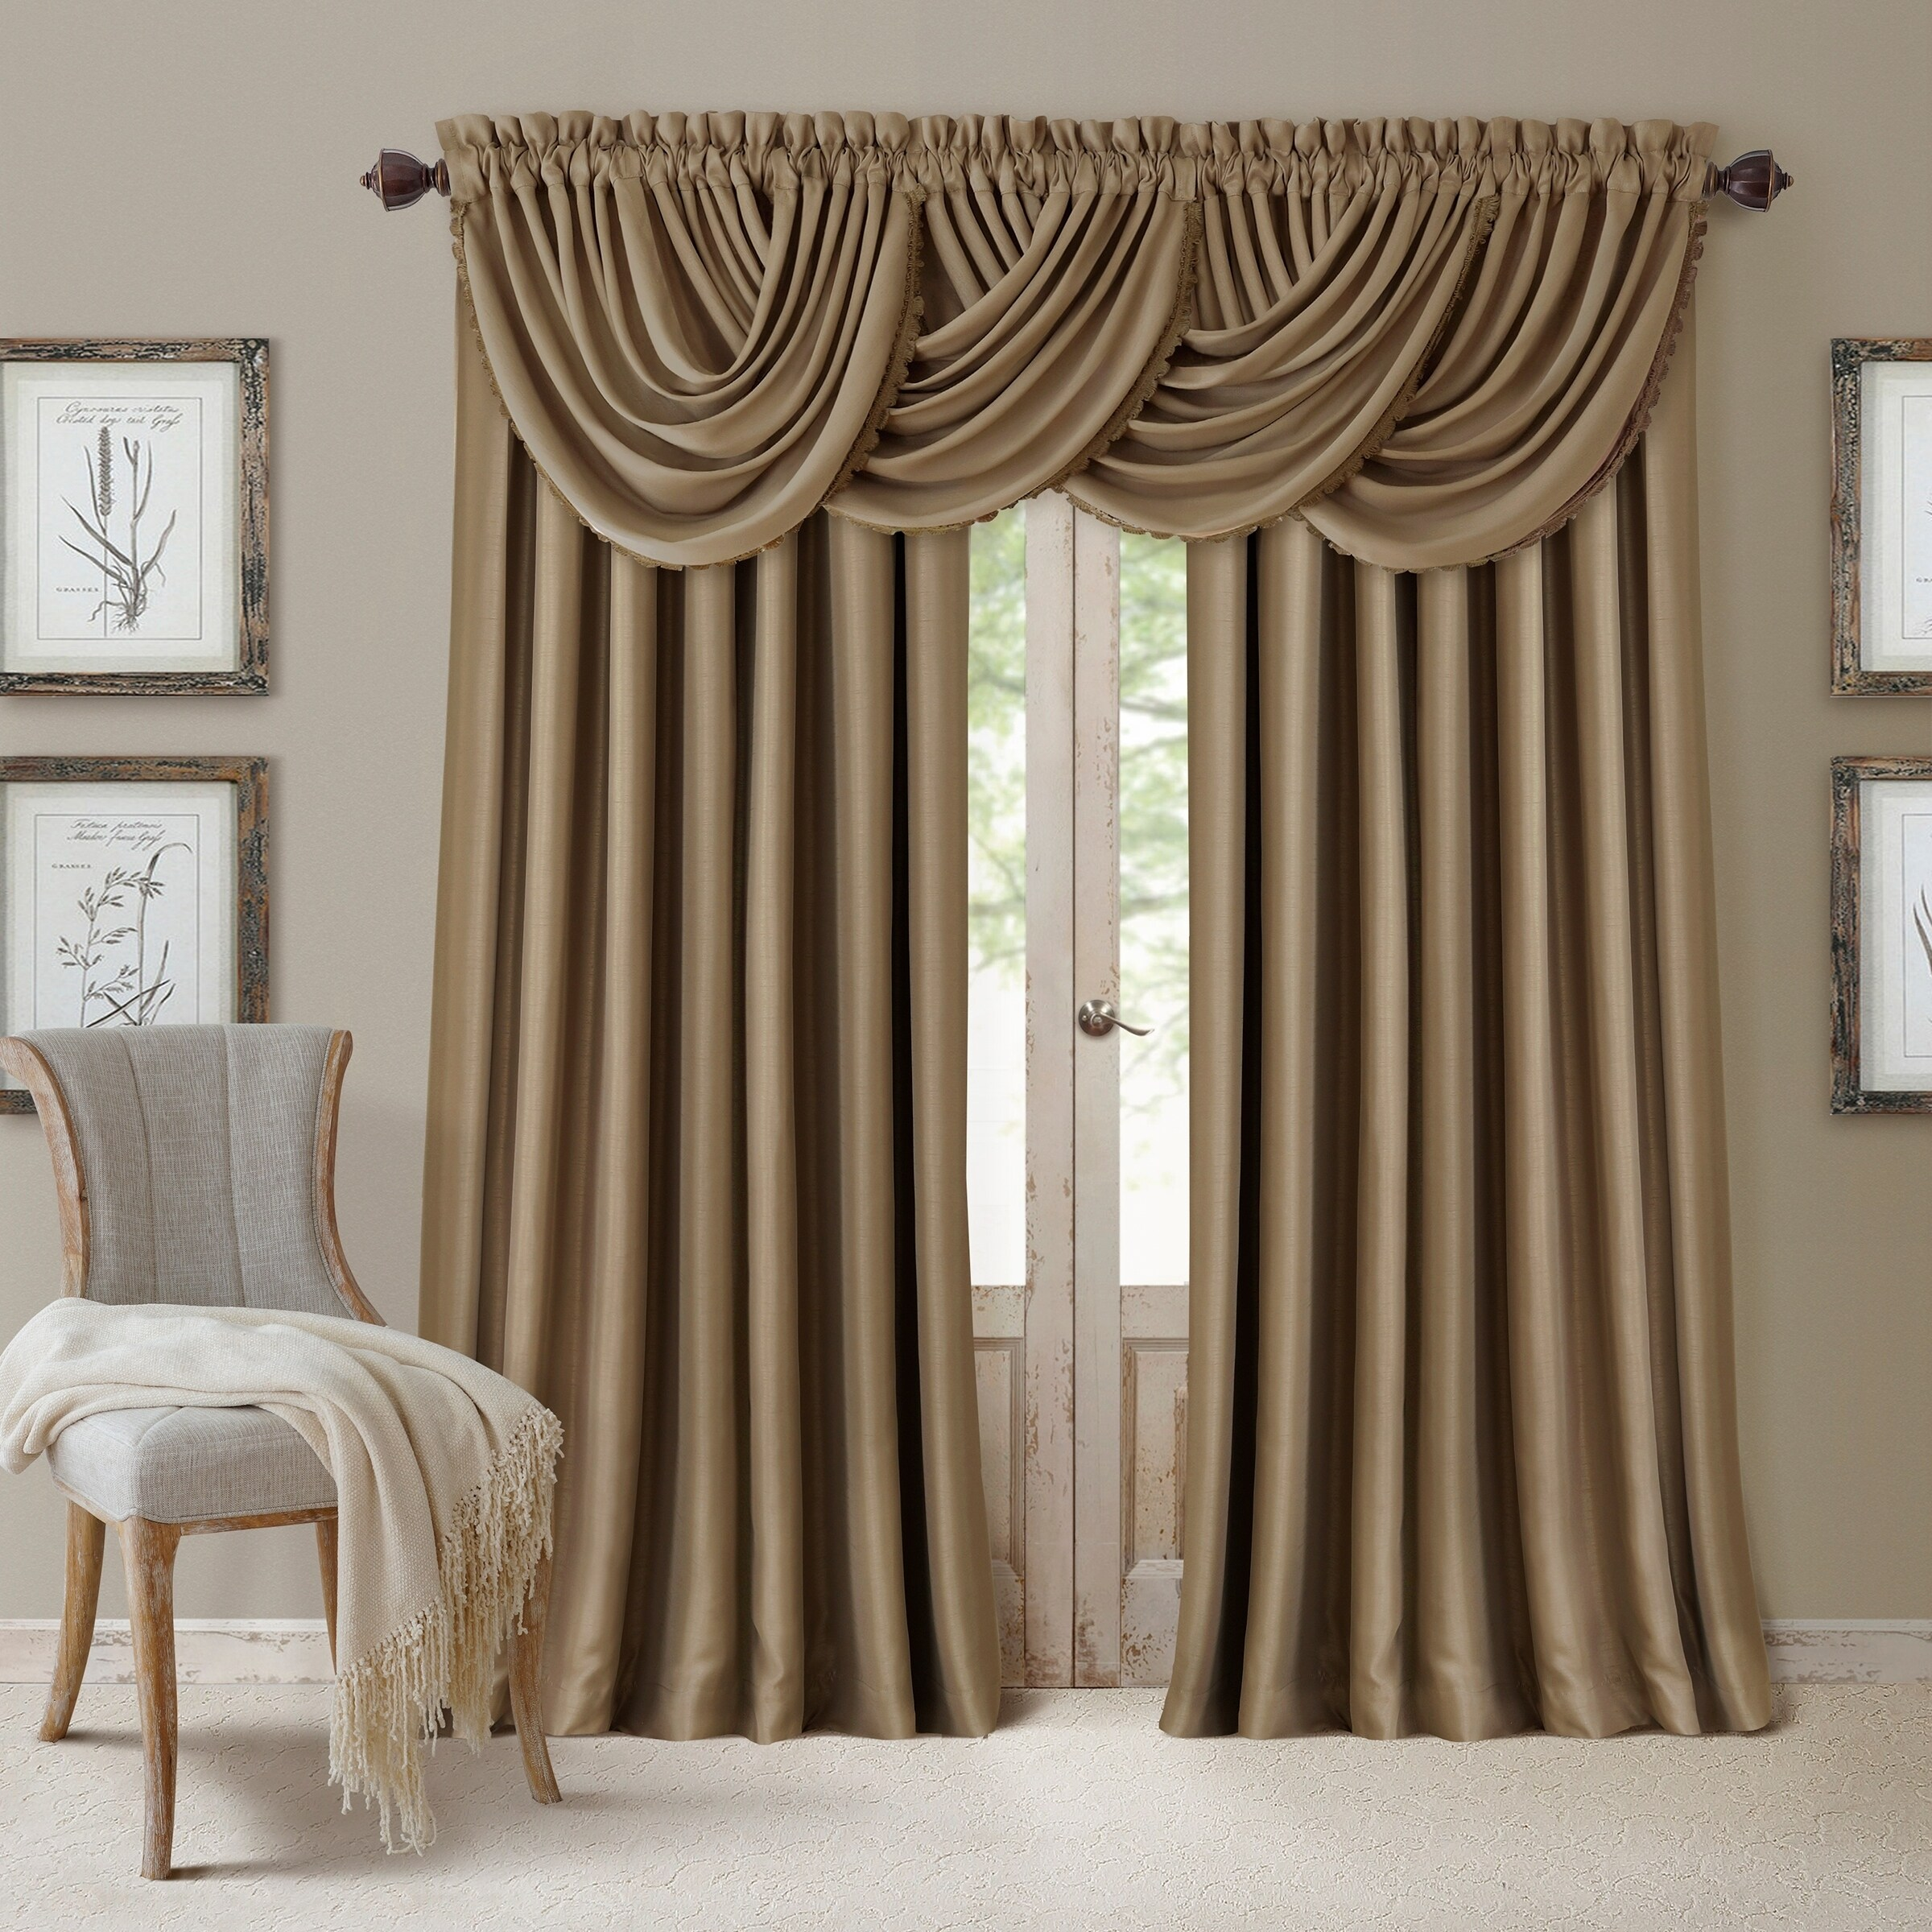 on drapes home back garden shipping panel free degeneres product overstock ellen tab shadow neutral pole top over orders